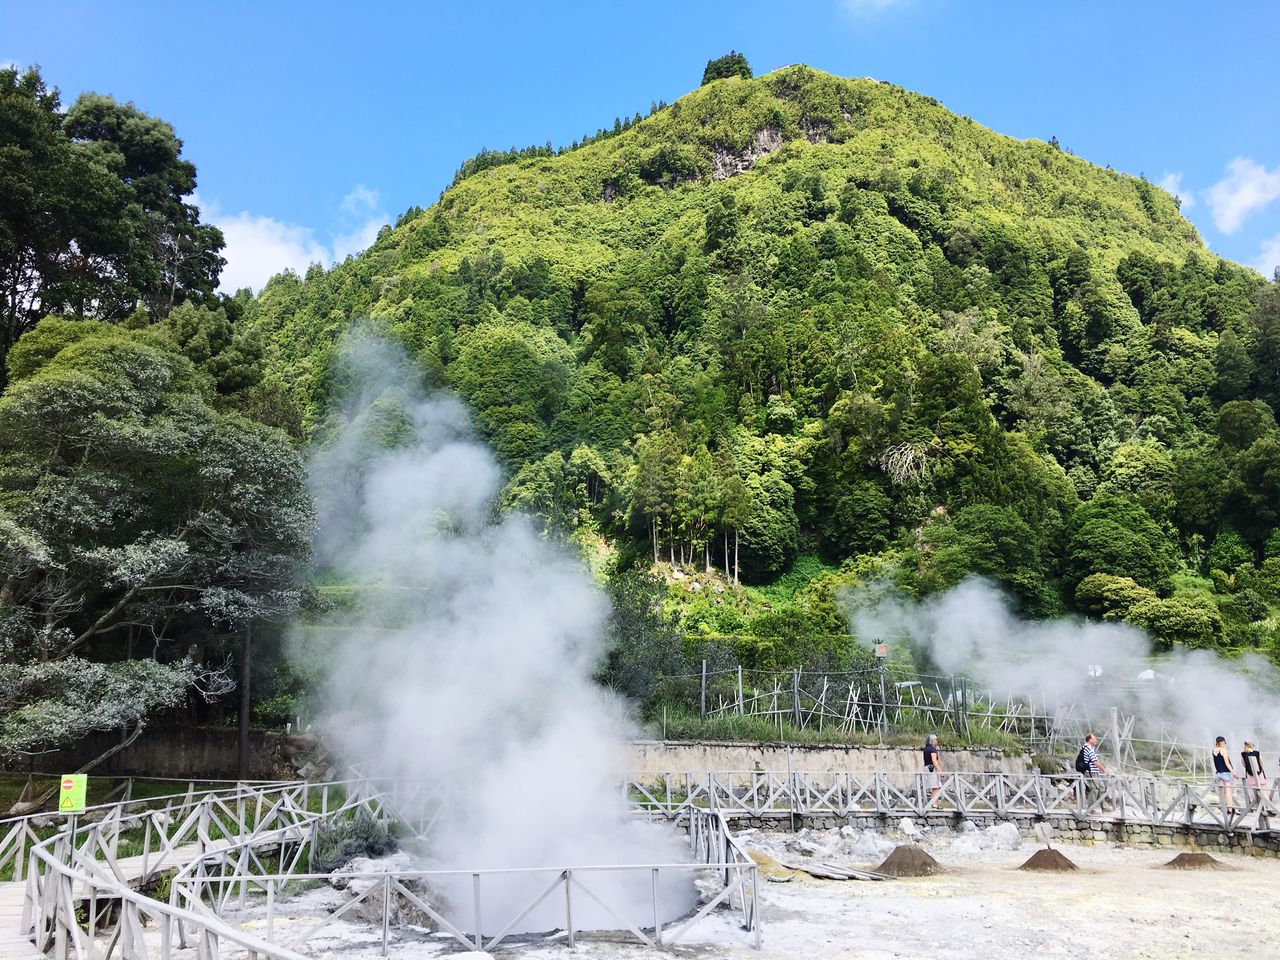 smoke - physical structure, tree, steam, plant, nature, day, hot spring, group of people, heat - temperature, sky, large group of people, crowd, real people, green color, beauty in nature, smoke, outdoors, environment, water, built structure, power in nature